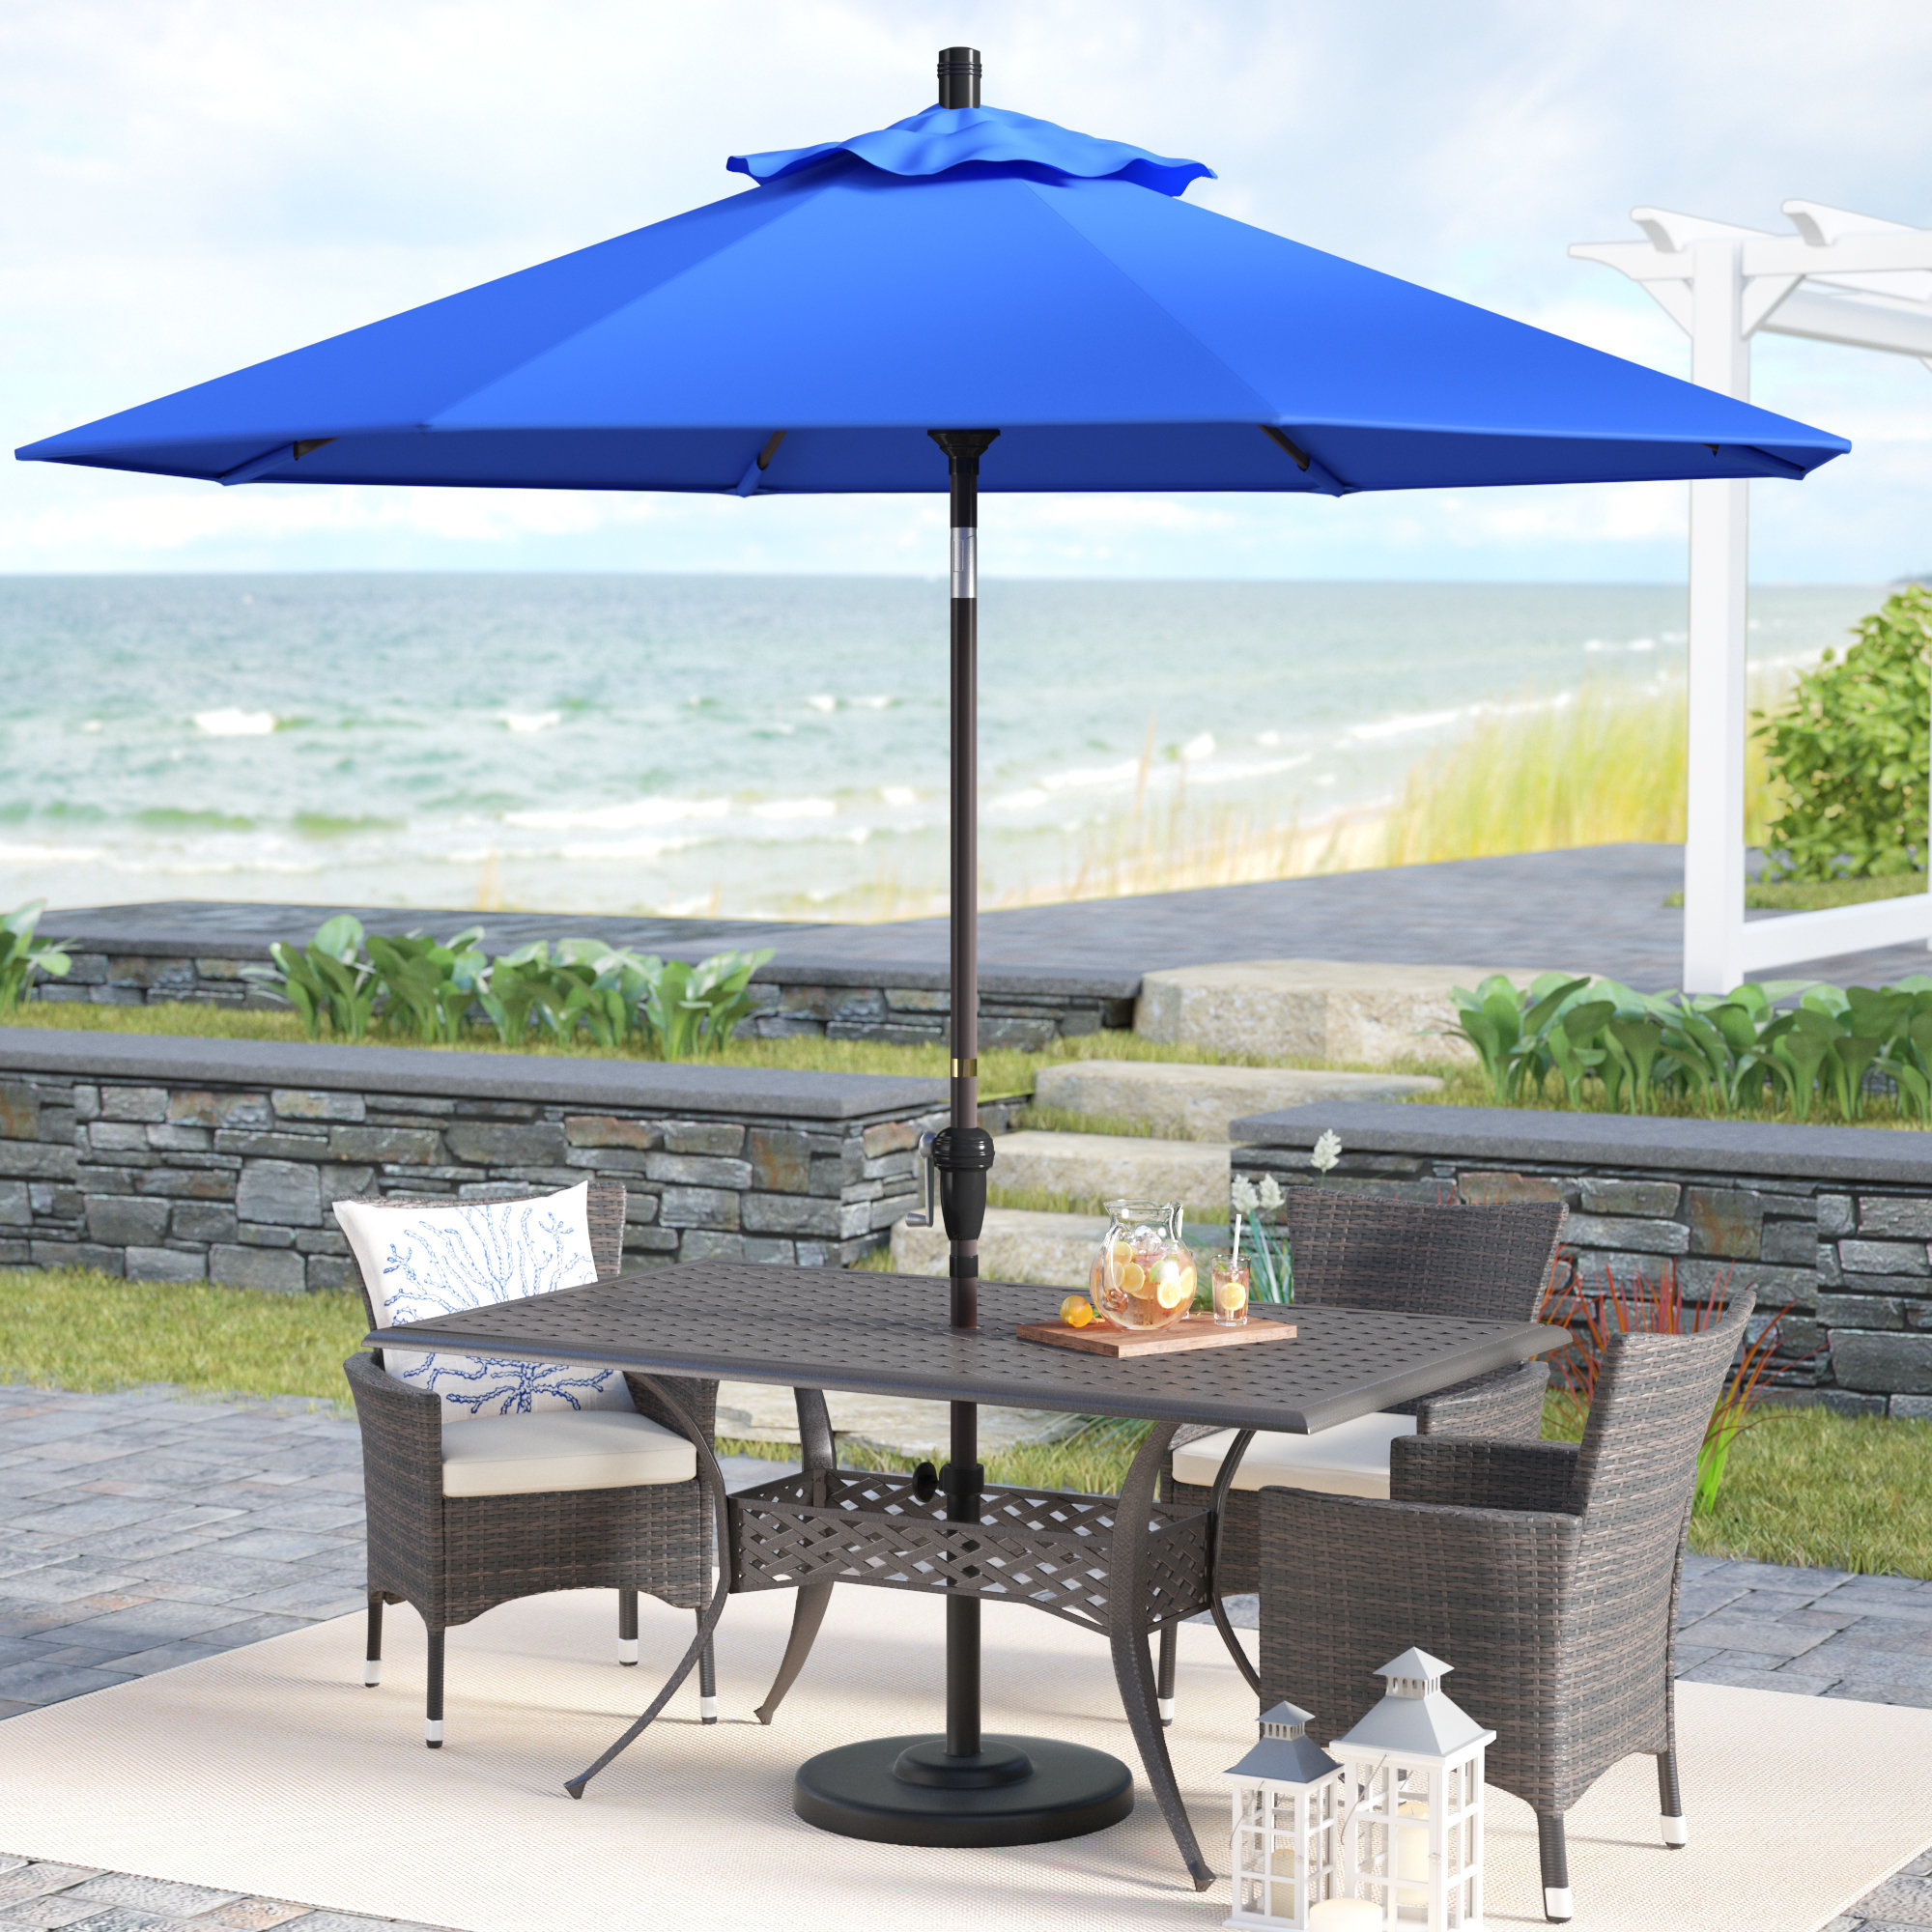 Well Known Mullaney Beachcrest Home Market Umbrellas Intended For Mullaney 9' Market Sunbrella Umbrella (View 7 of 20)